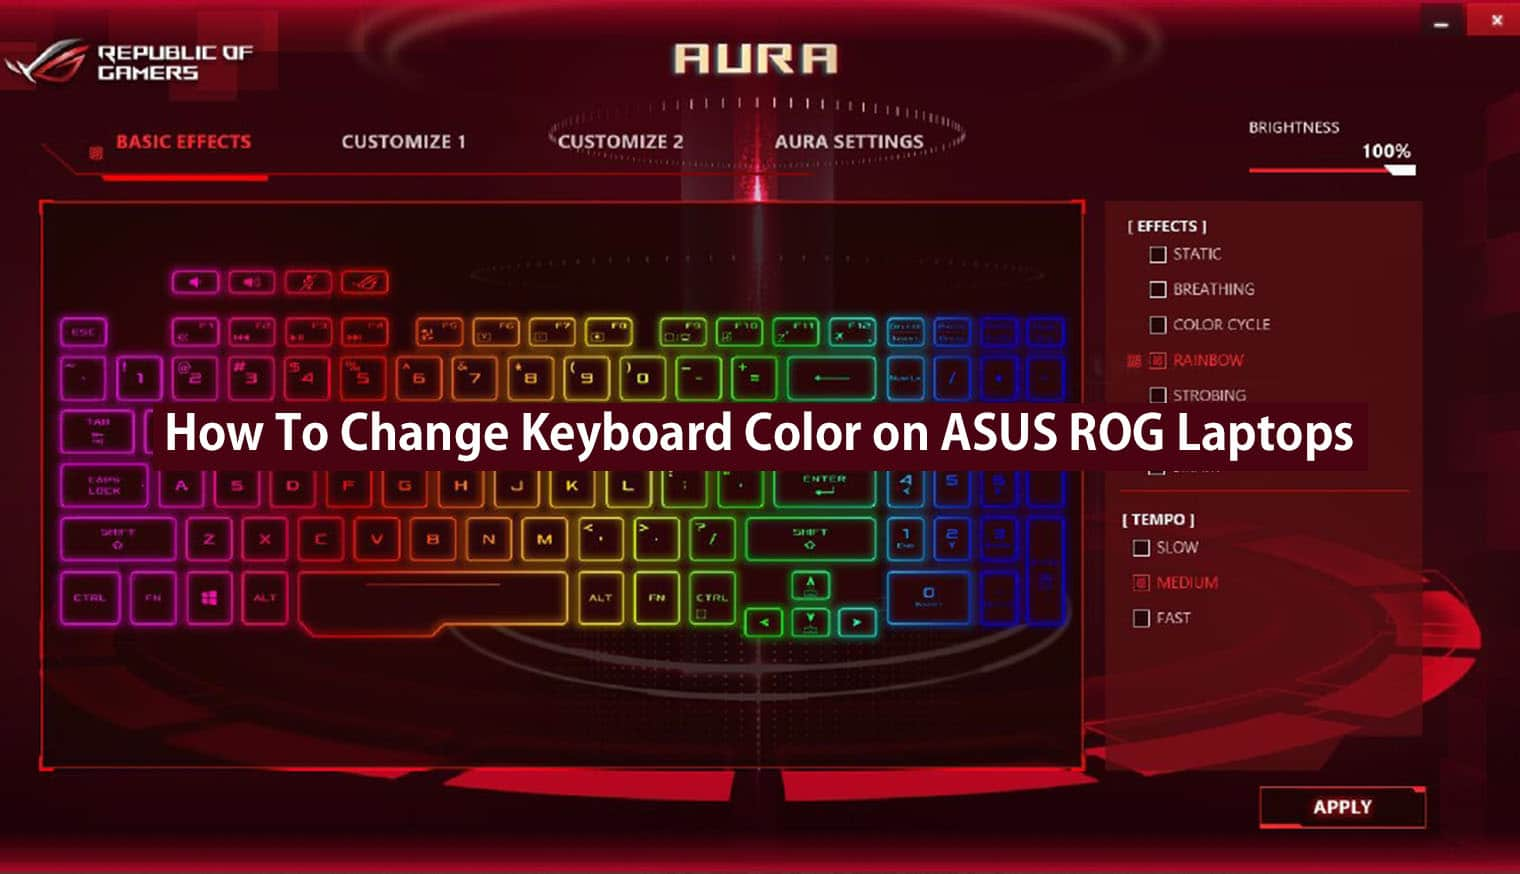 change keyboard color on asus rog laptops